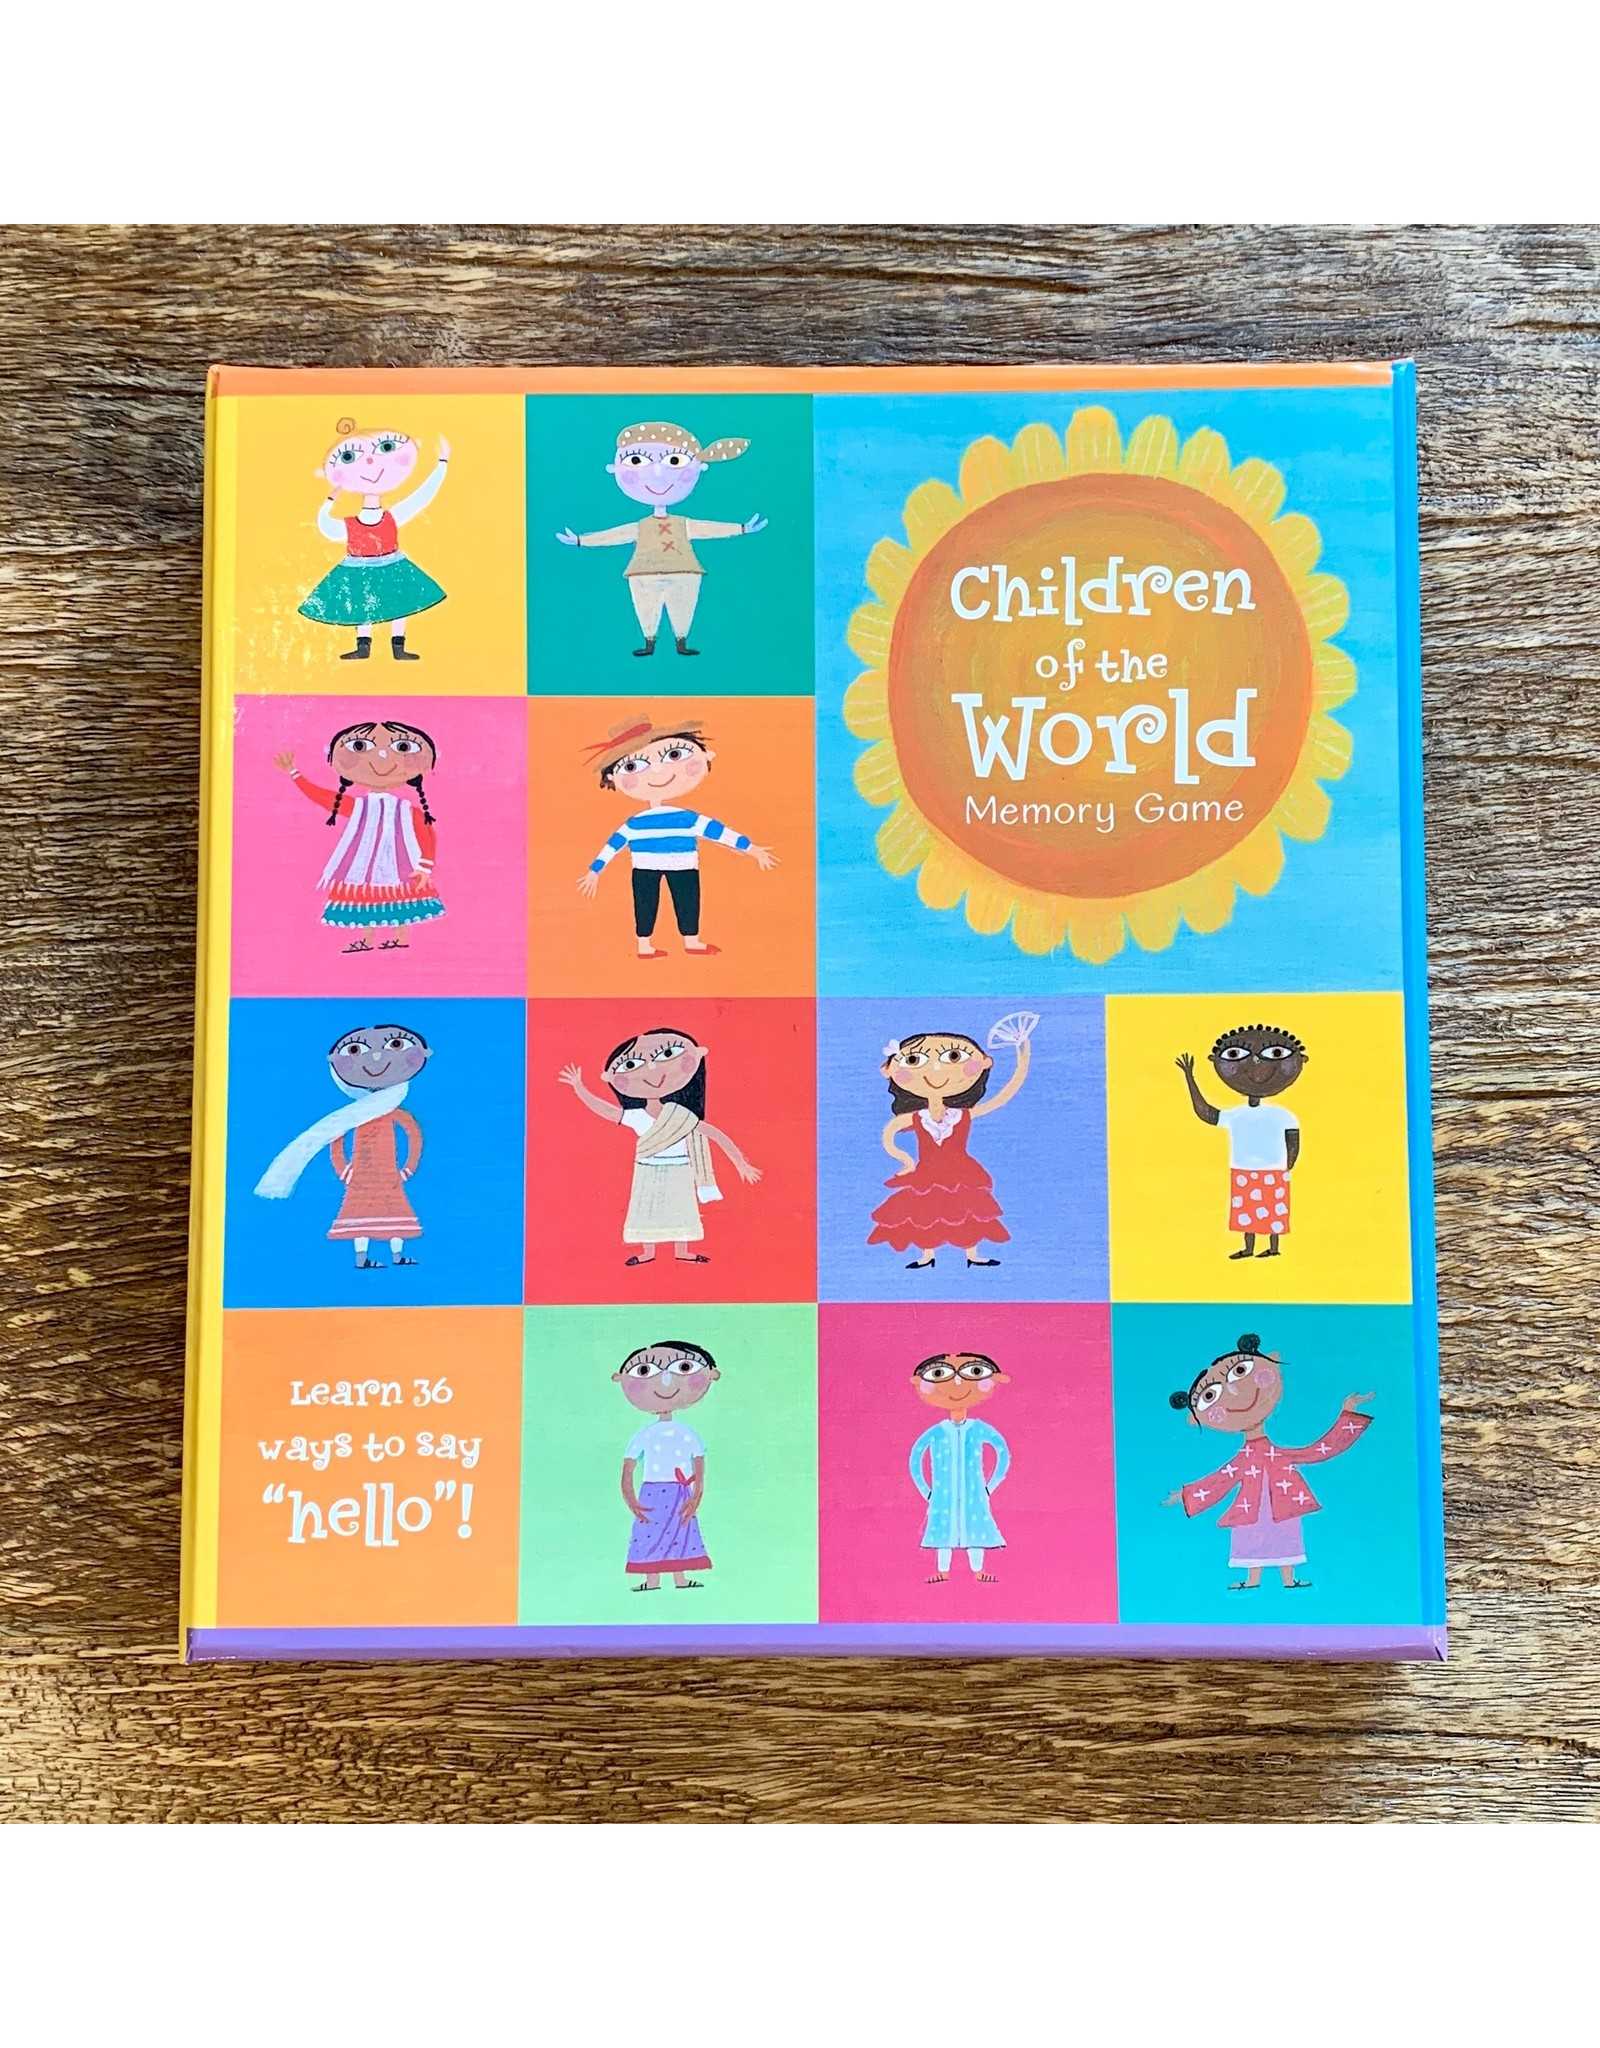 Ten Thousand Villages Children of the World Memory Game